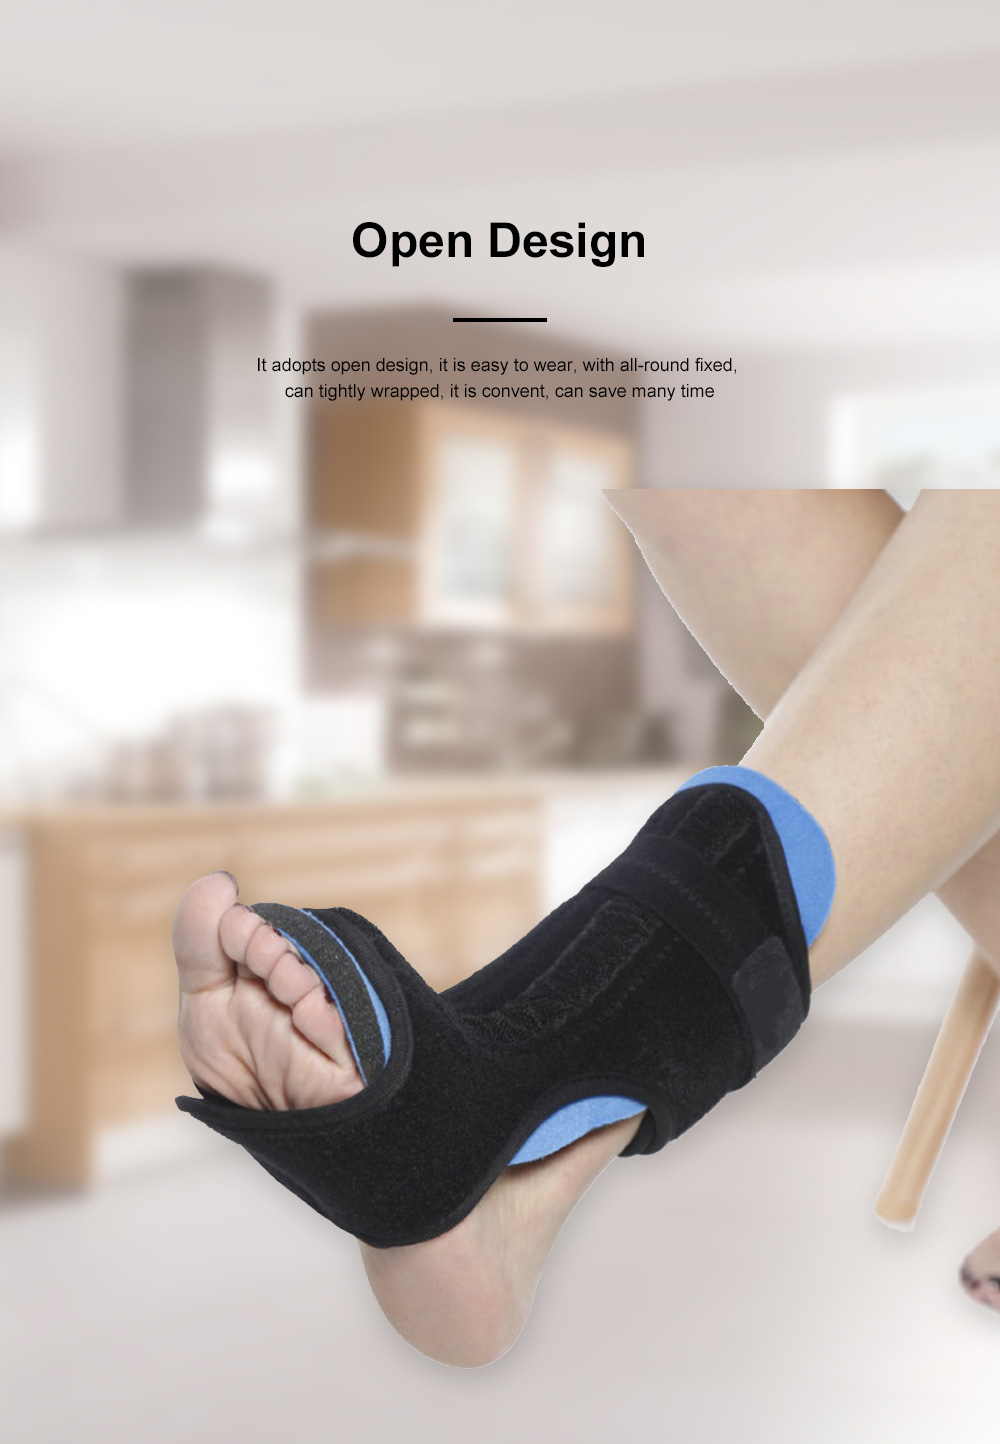 Ankle Support Adjustable Ankle Brace Breathable Nylon Material Highly Elastic Perfect For The Ankle Tendons Correcting 2